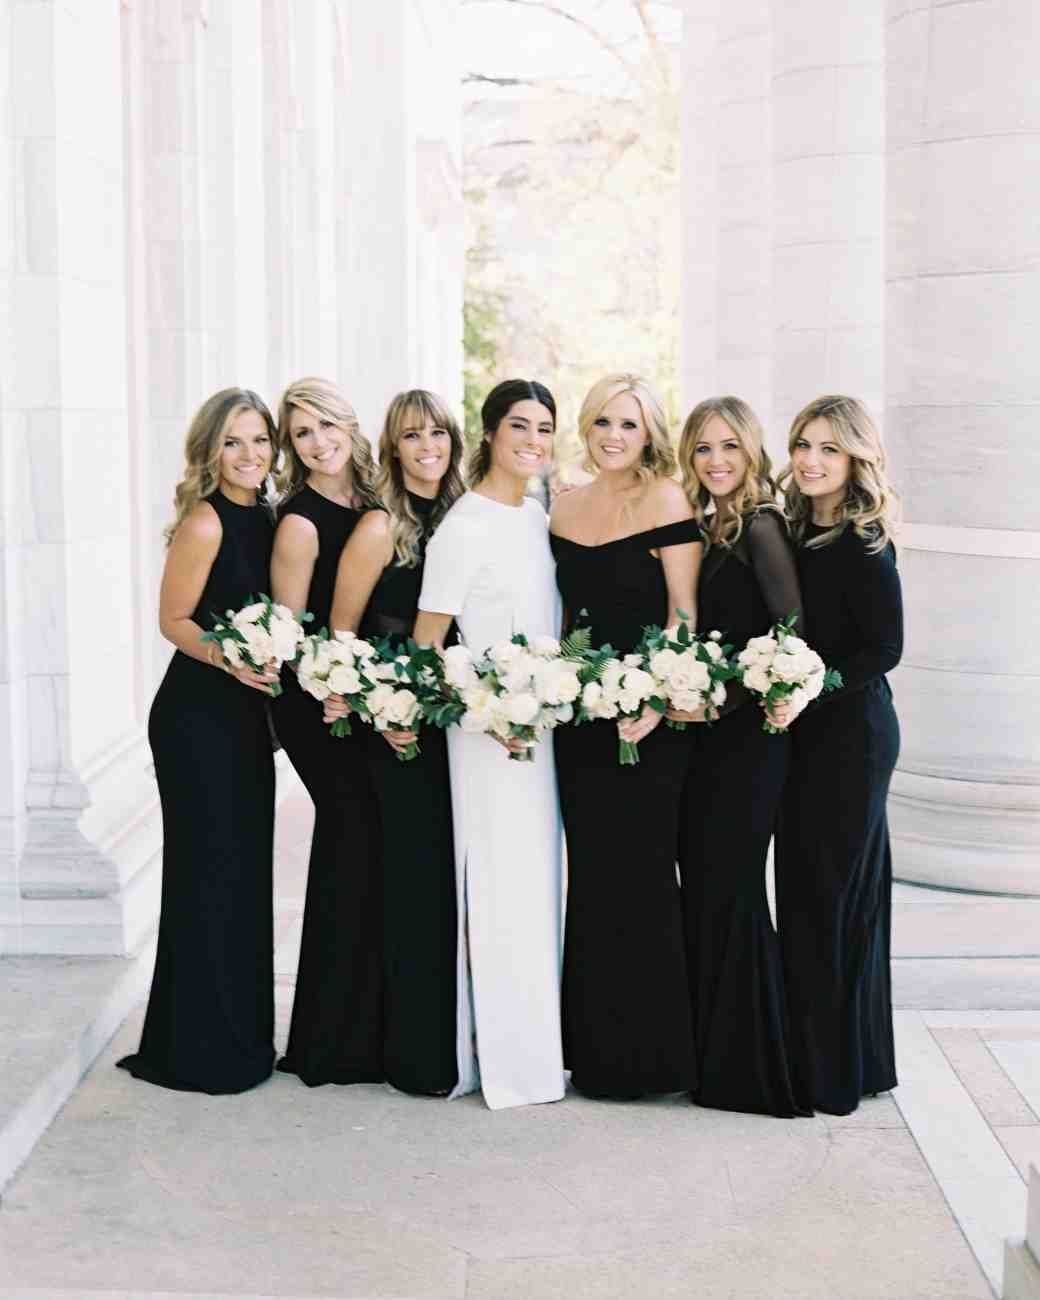 Black dress bridesmaid - Find This Pin And More On Bridesmaid Dresses